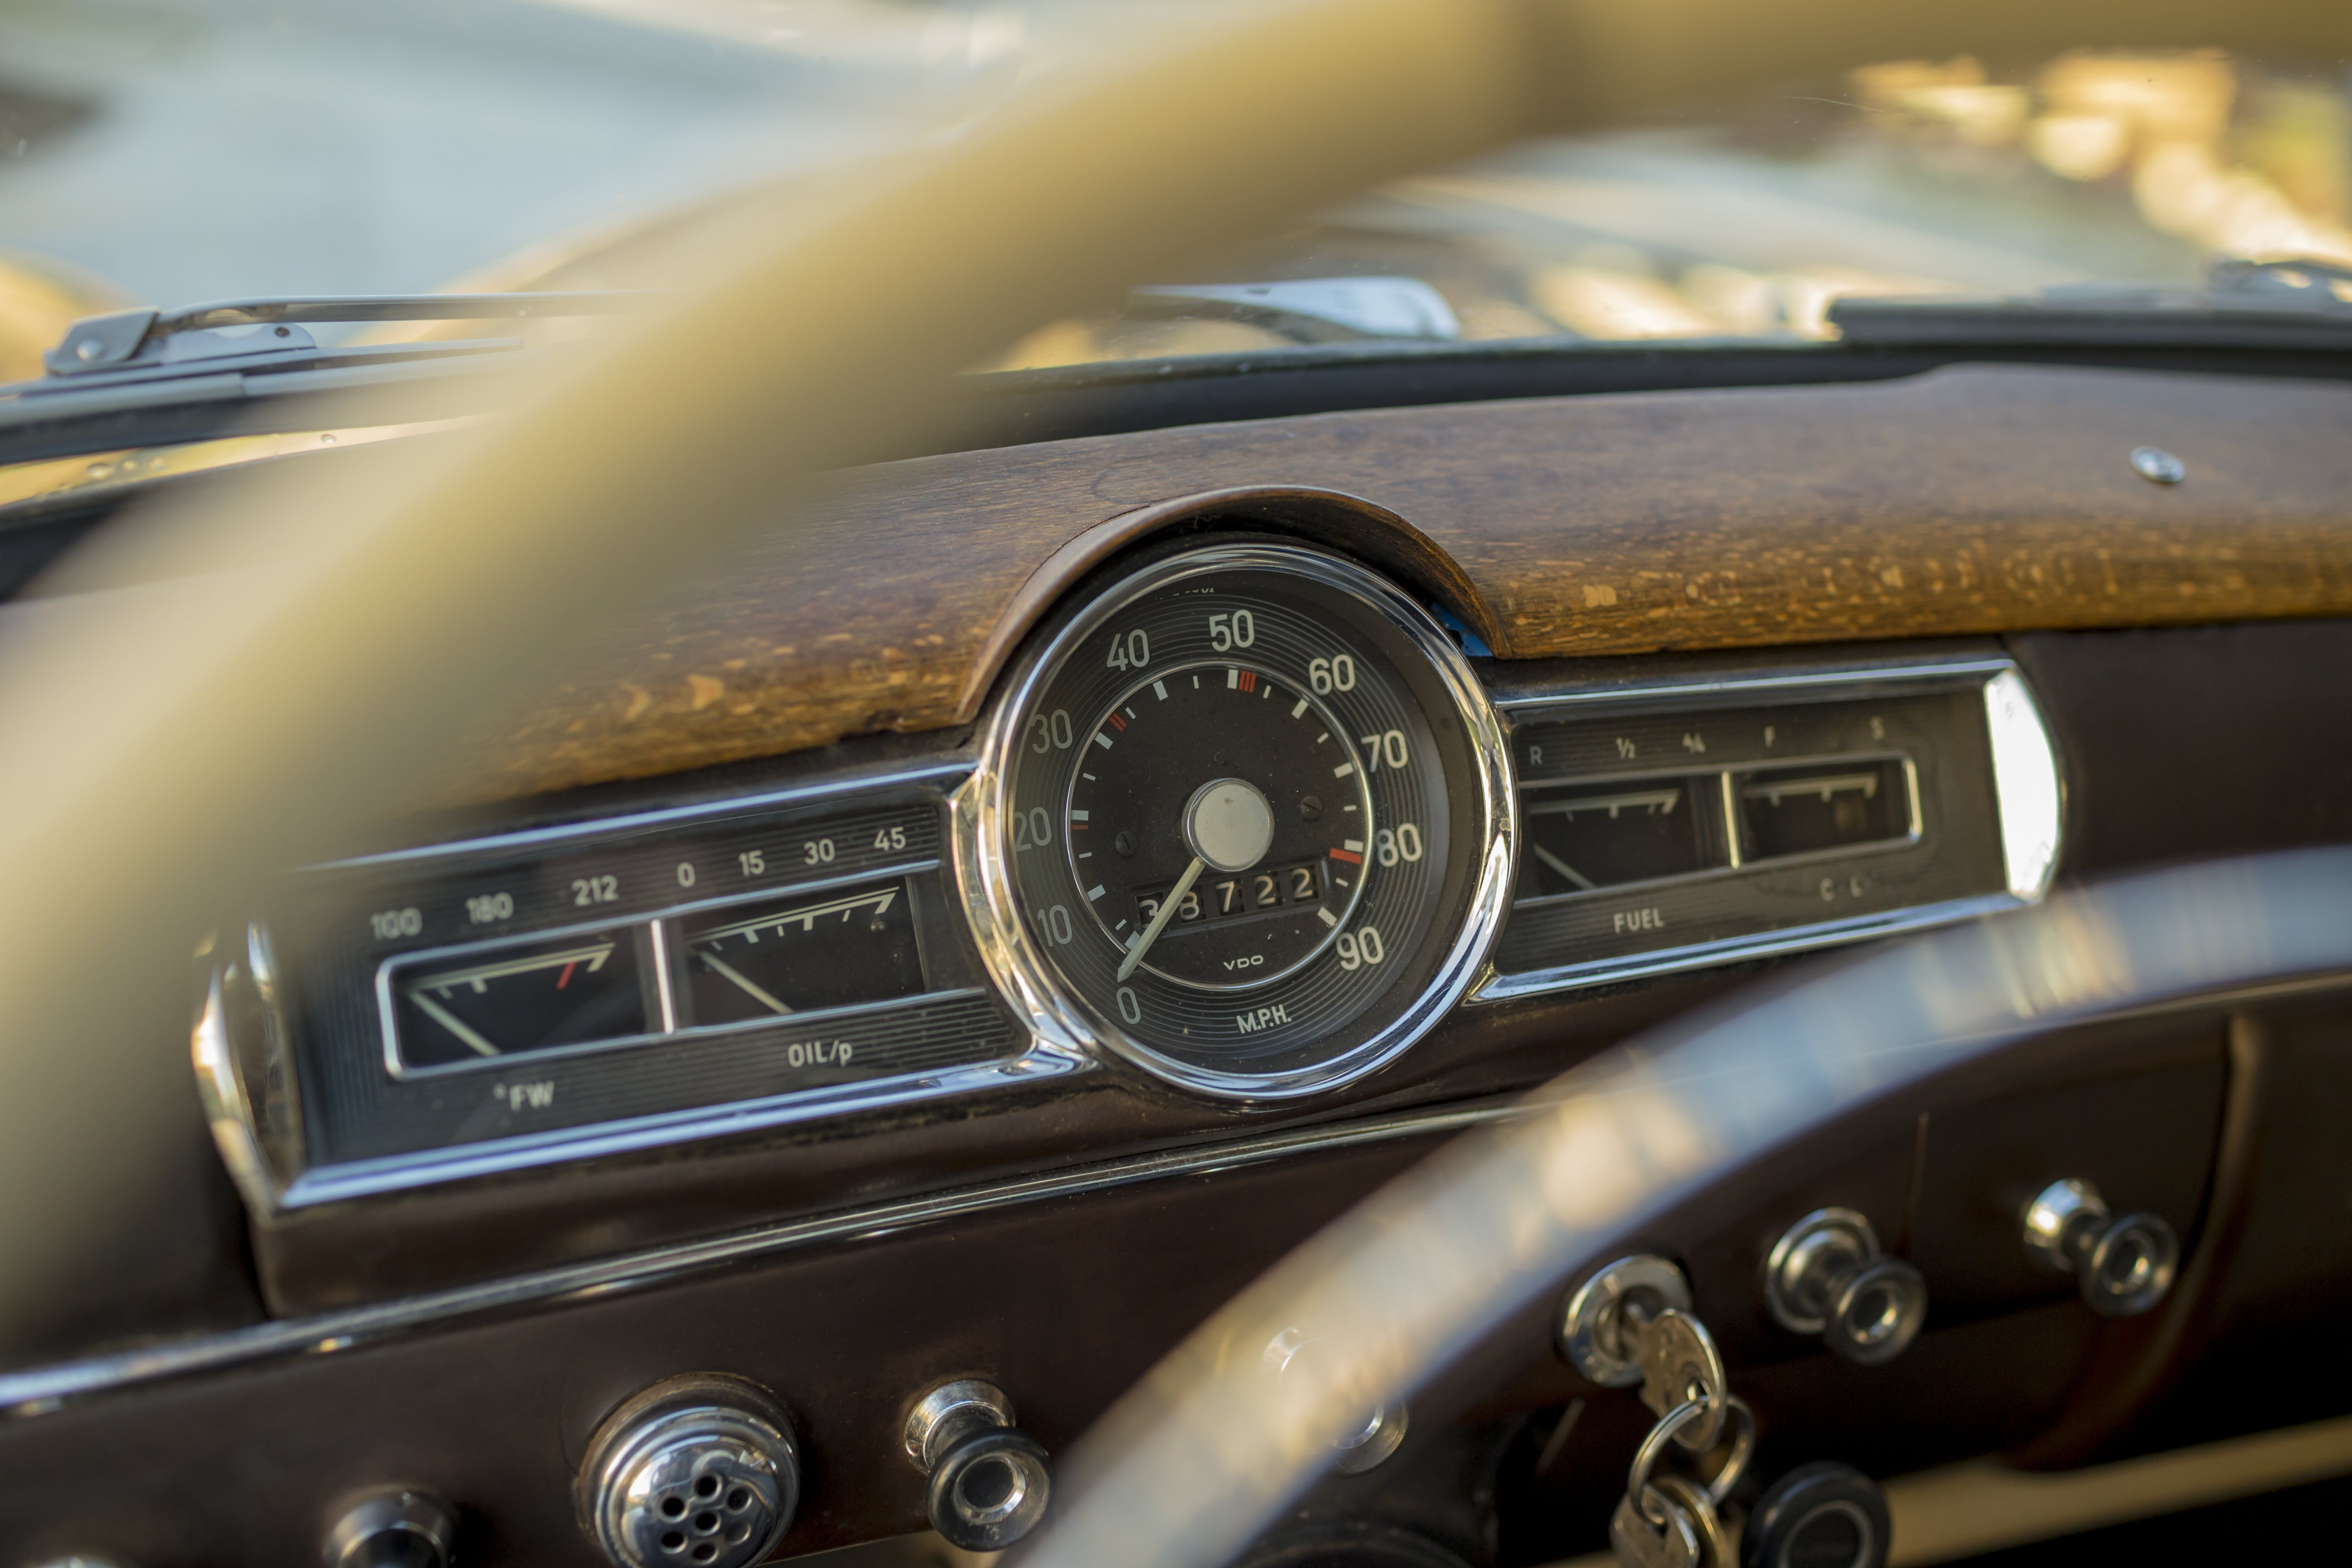 Free stock photo of car, vehicle, driving, travel